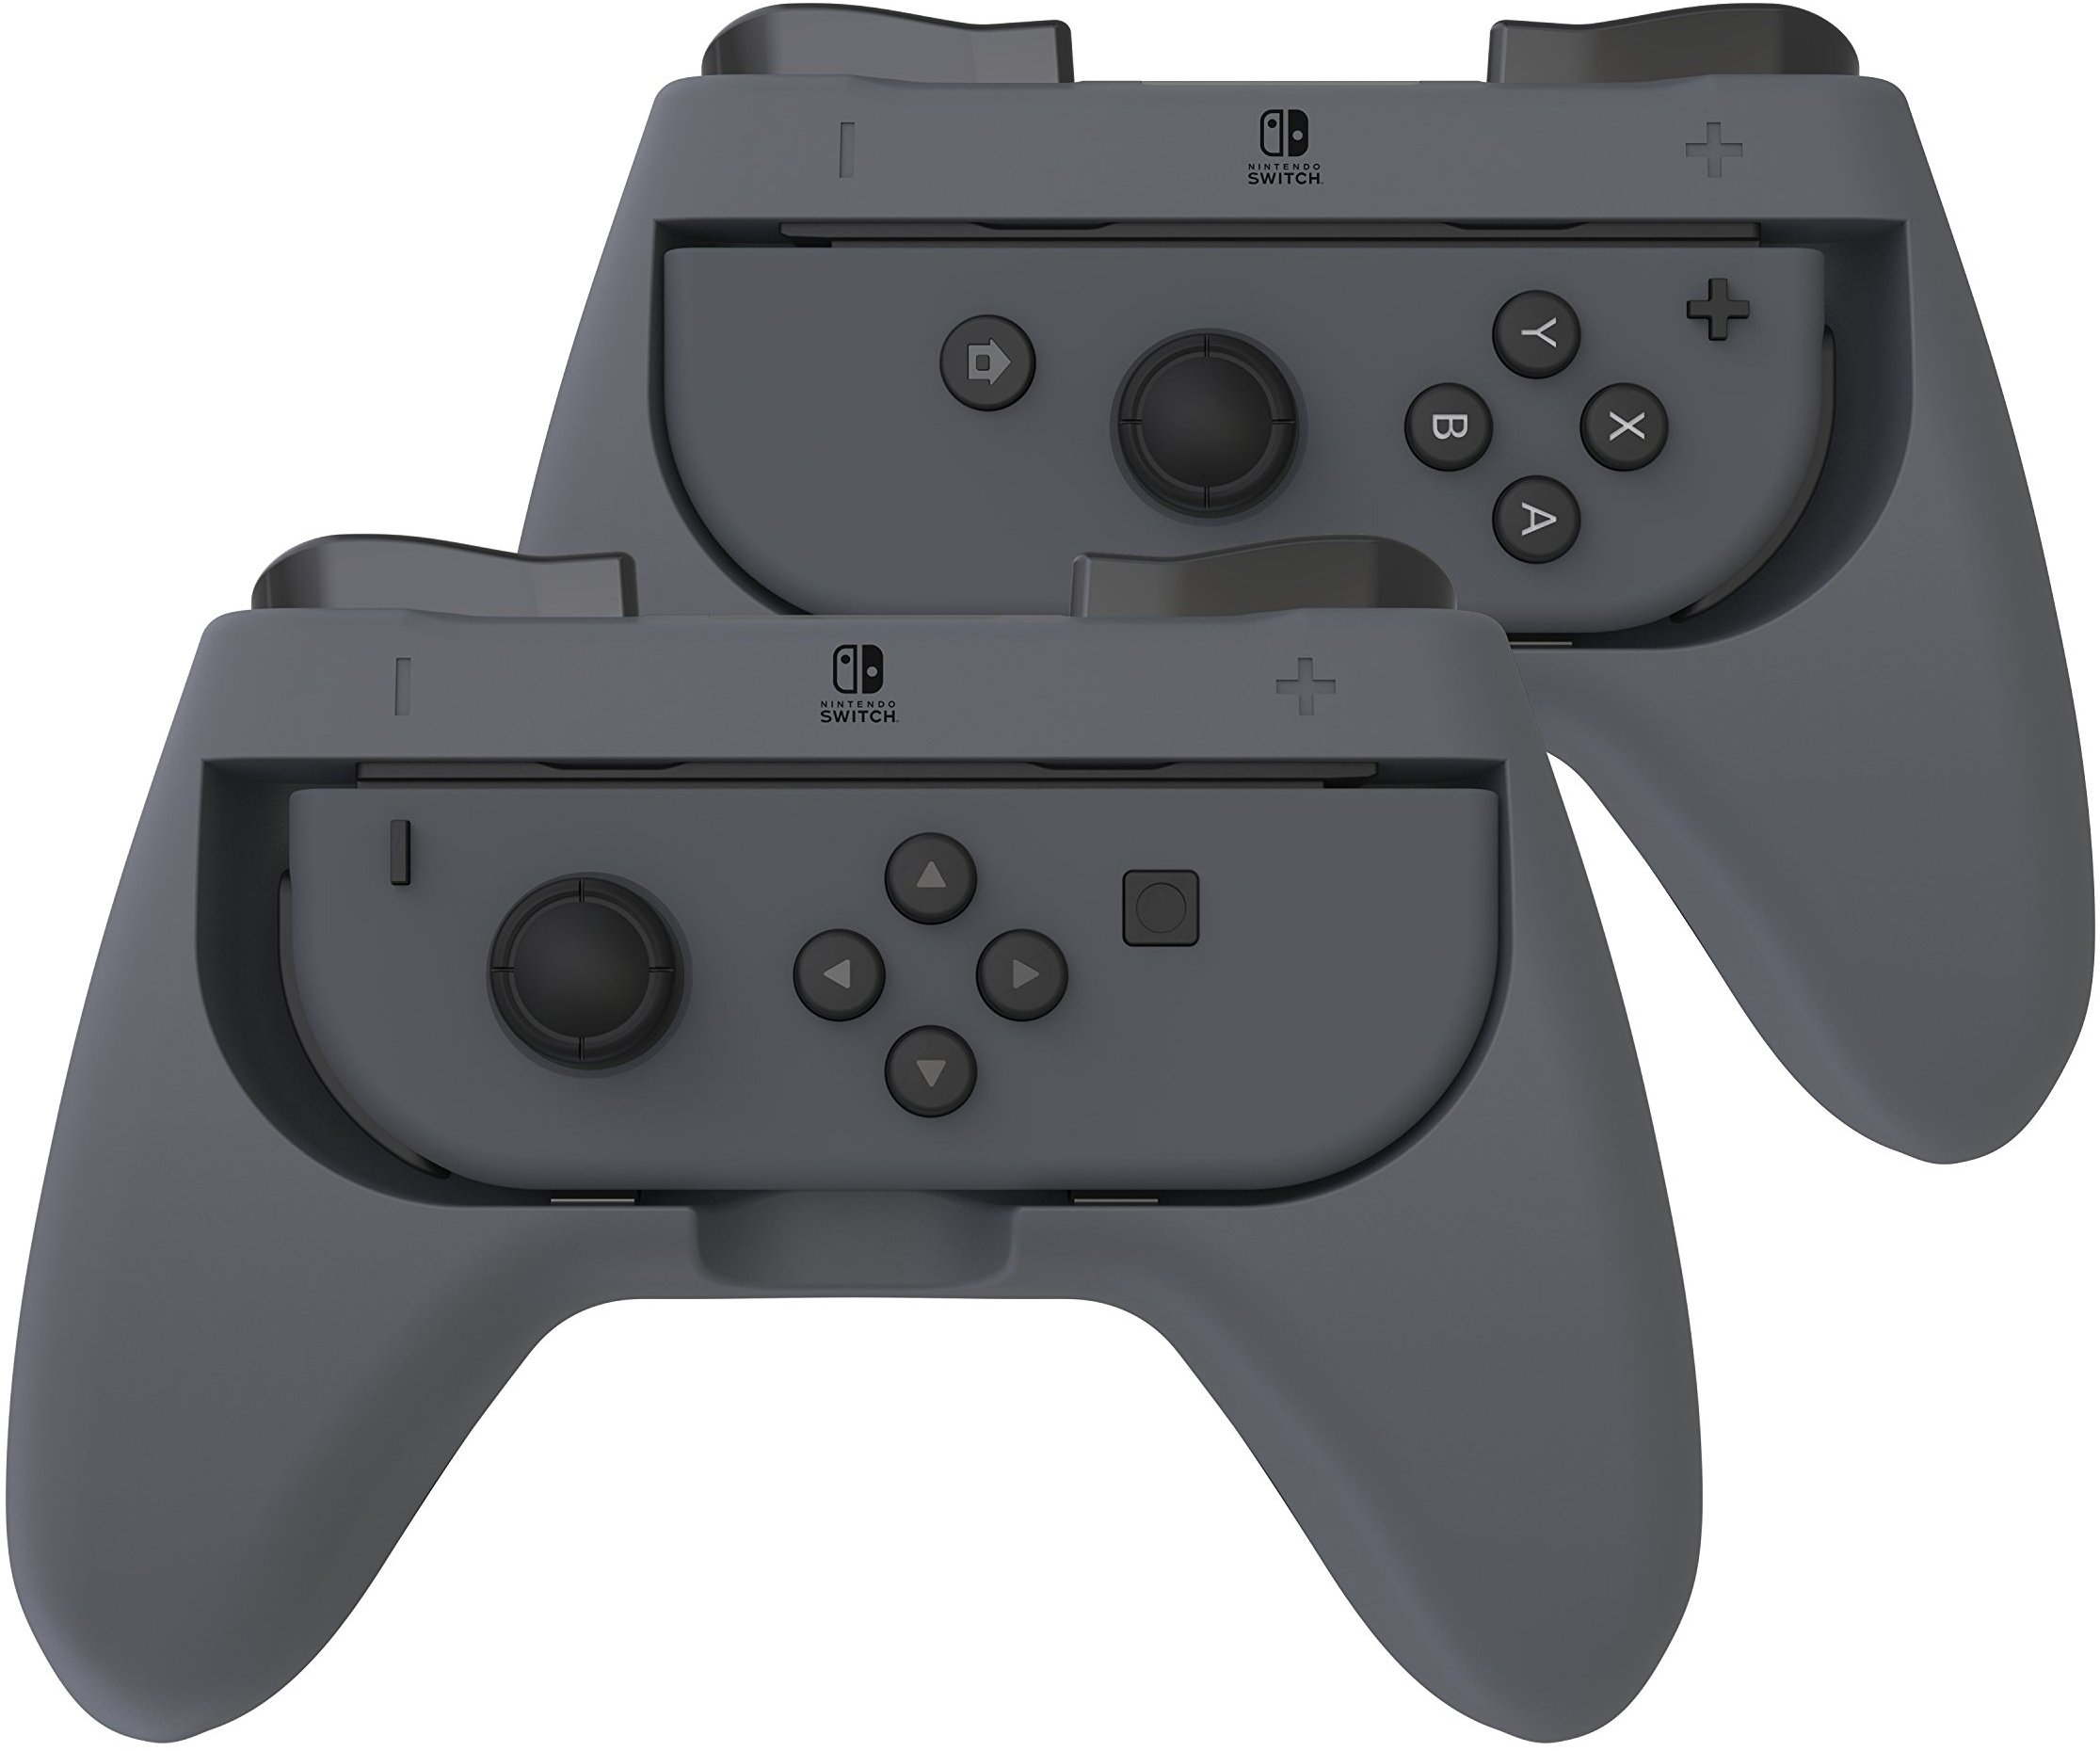 Details about PDP Nintendo Switch Pro Player Joy Con Full Size Controller  Comfort Grips